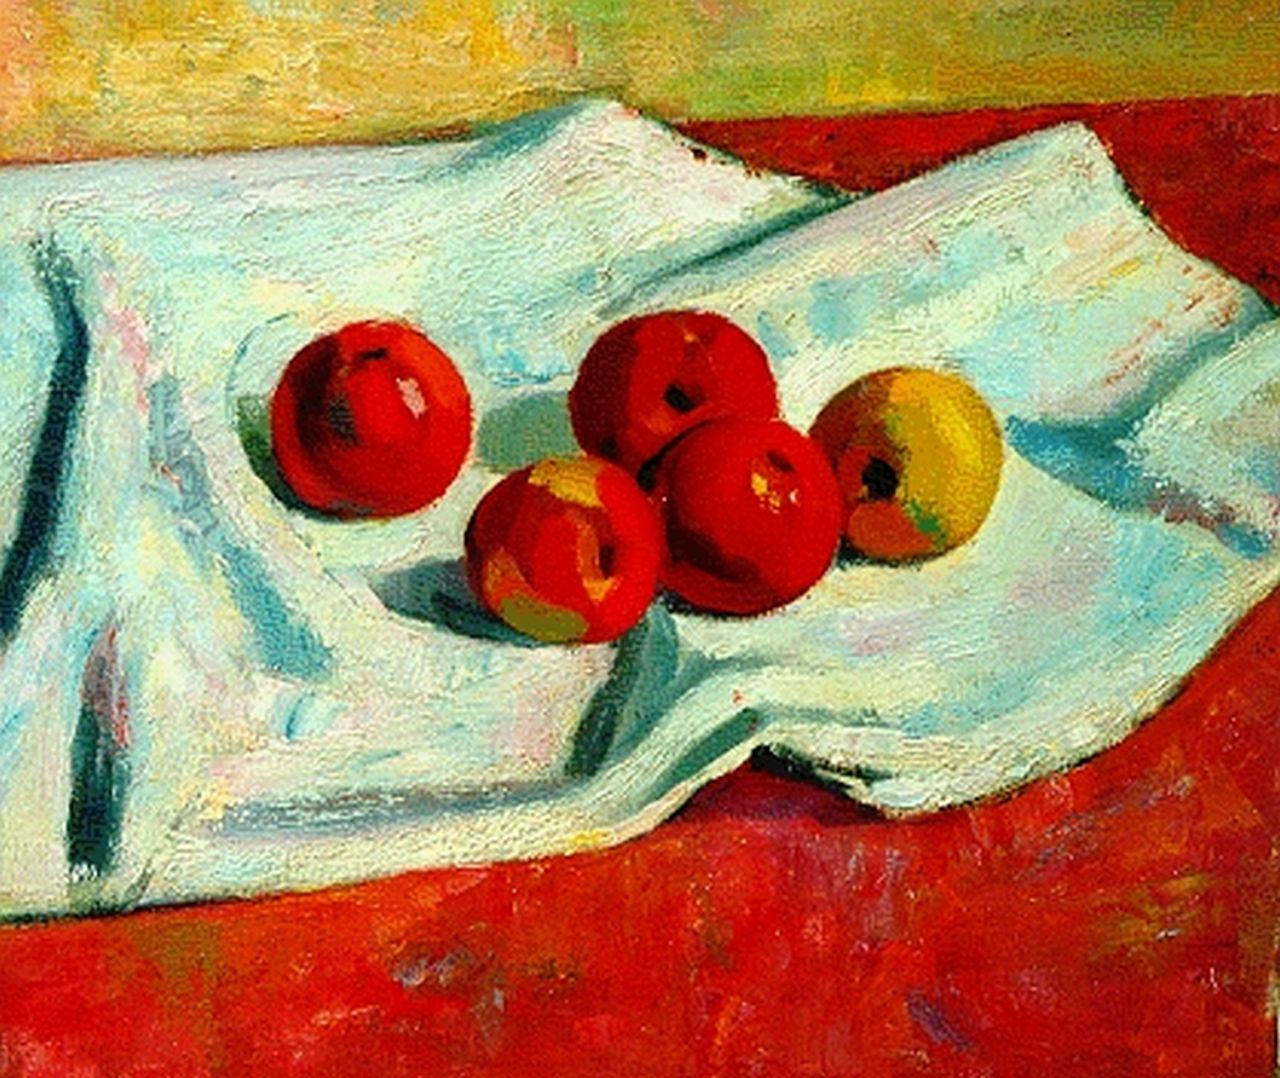 Dalen A. van | Aart van Dalen, A still life with apples, oil on canvas 55.0 x 60.2 cm